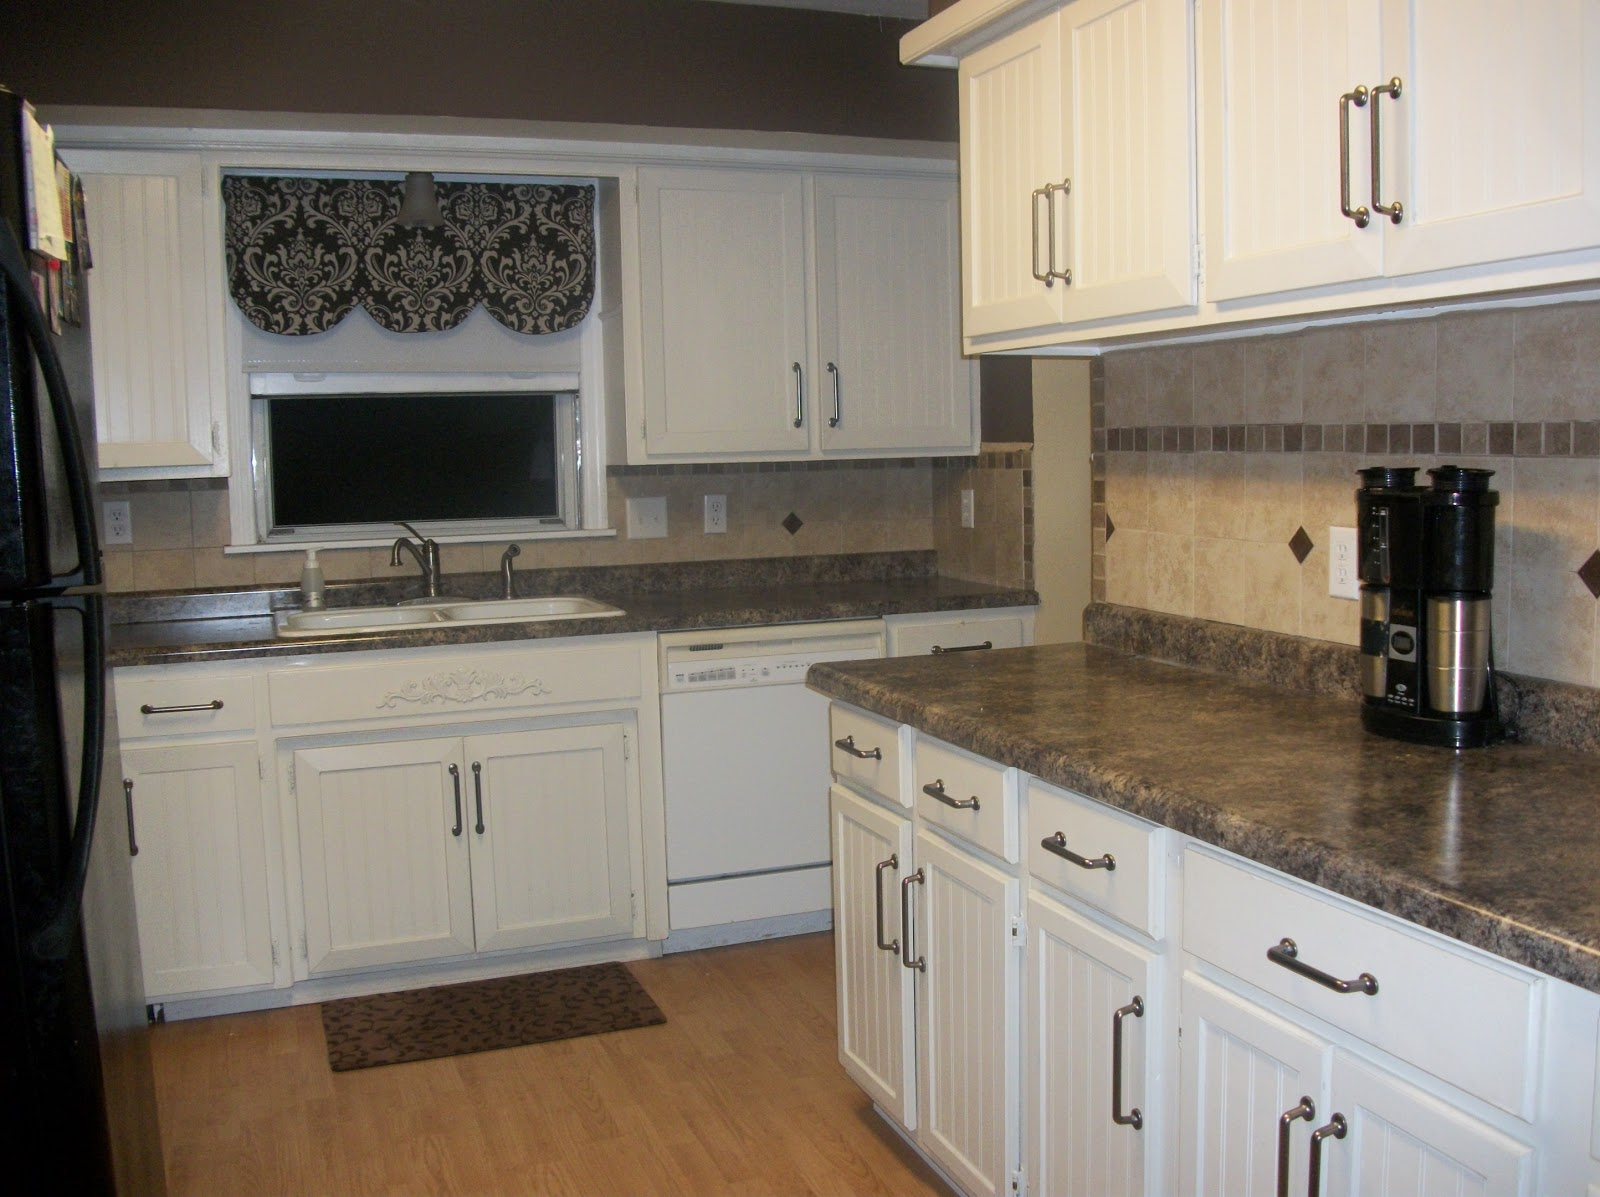 Guest Post: Kitchen Remodel On A Low Budget